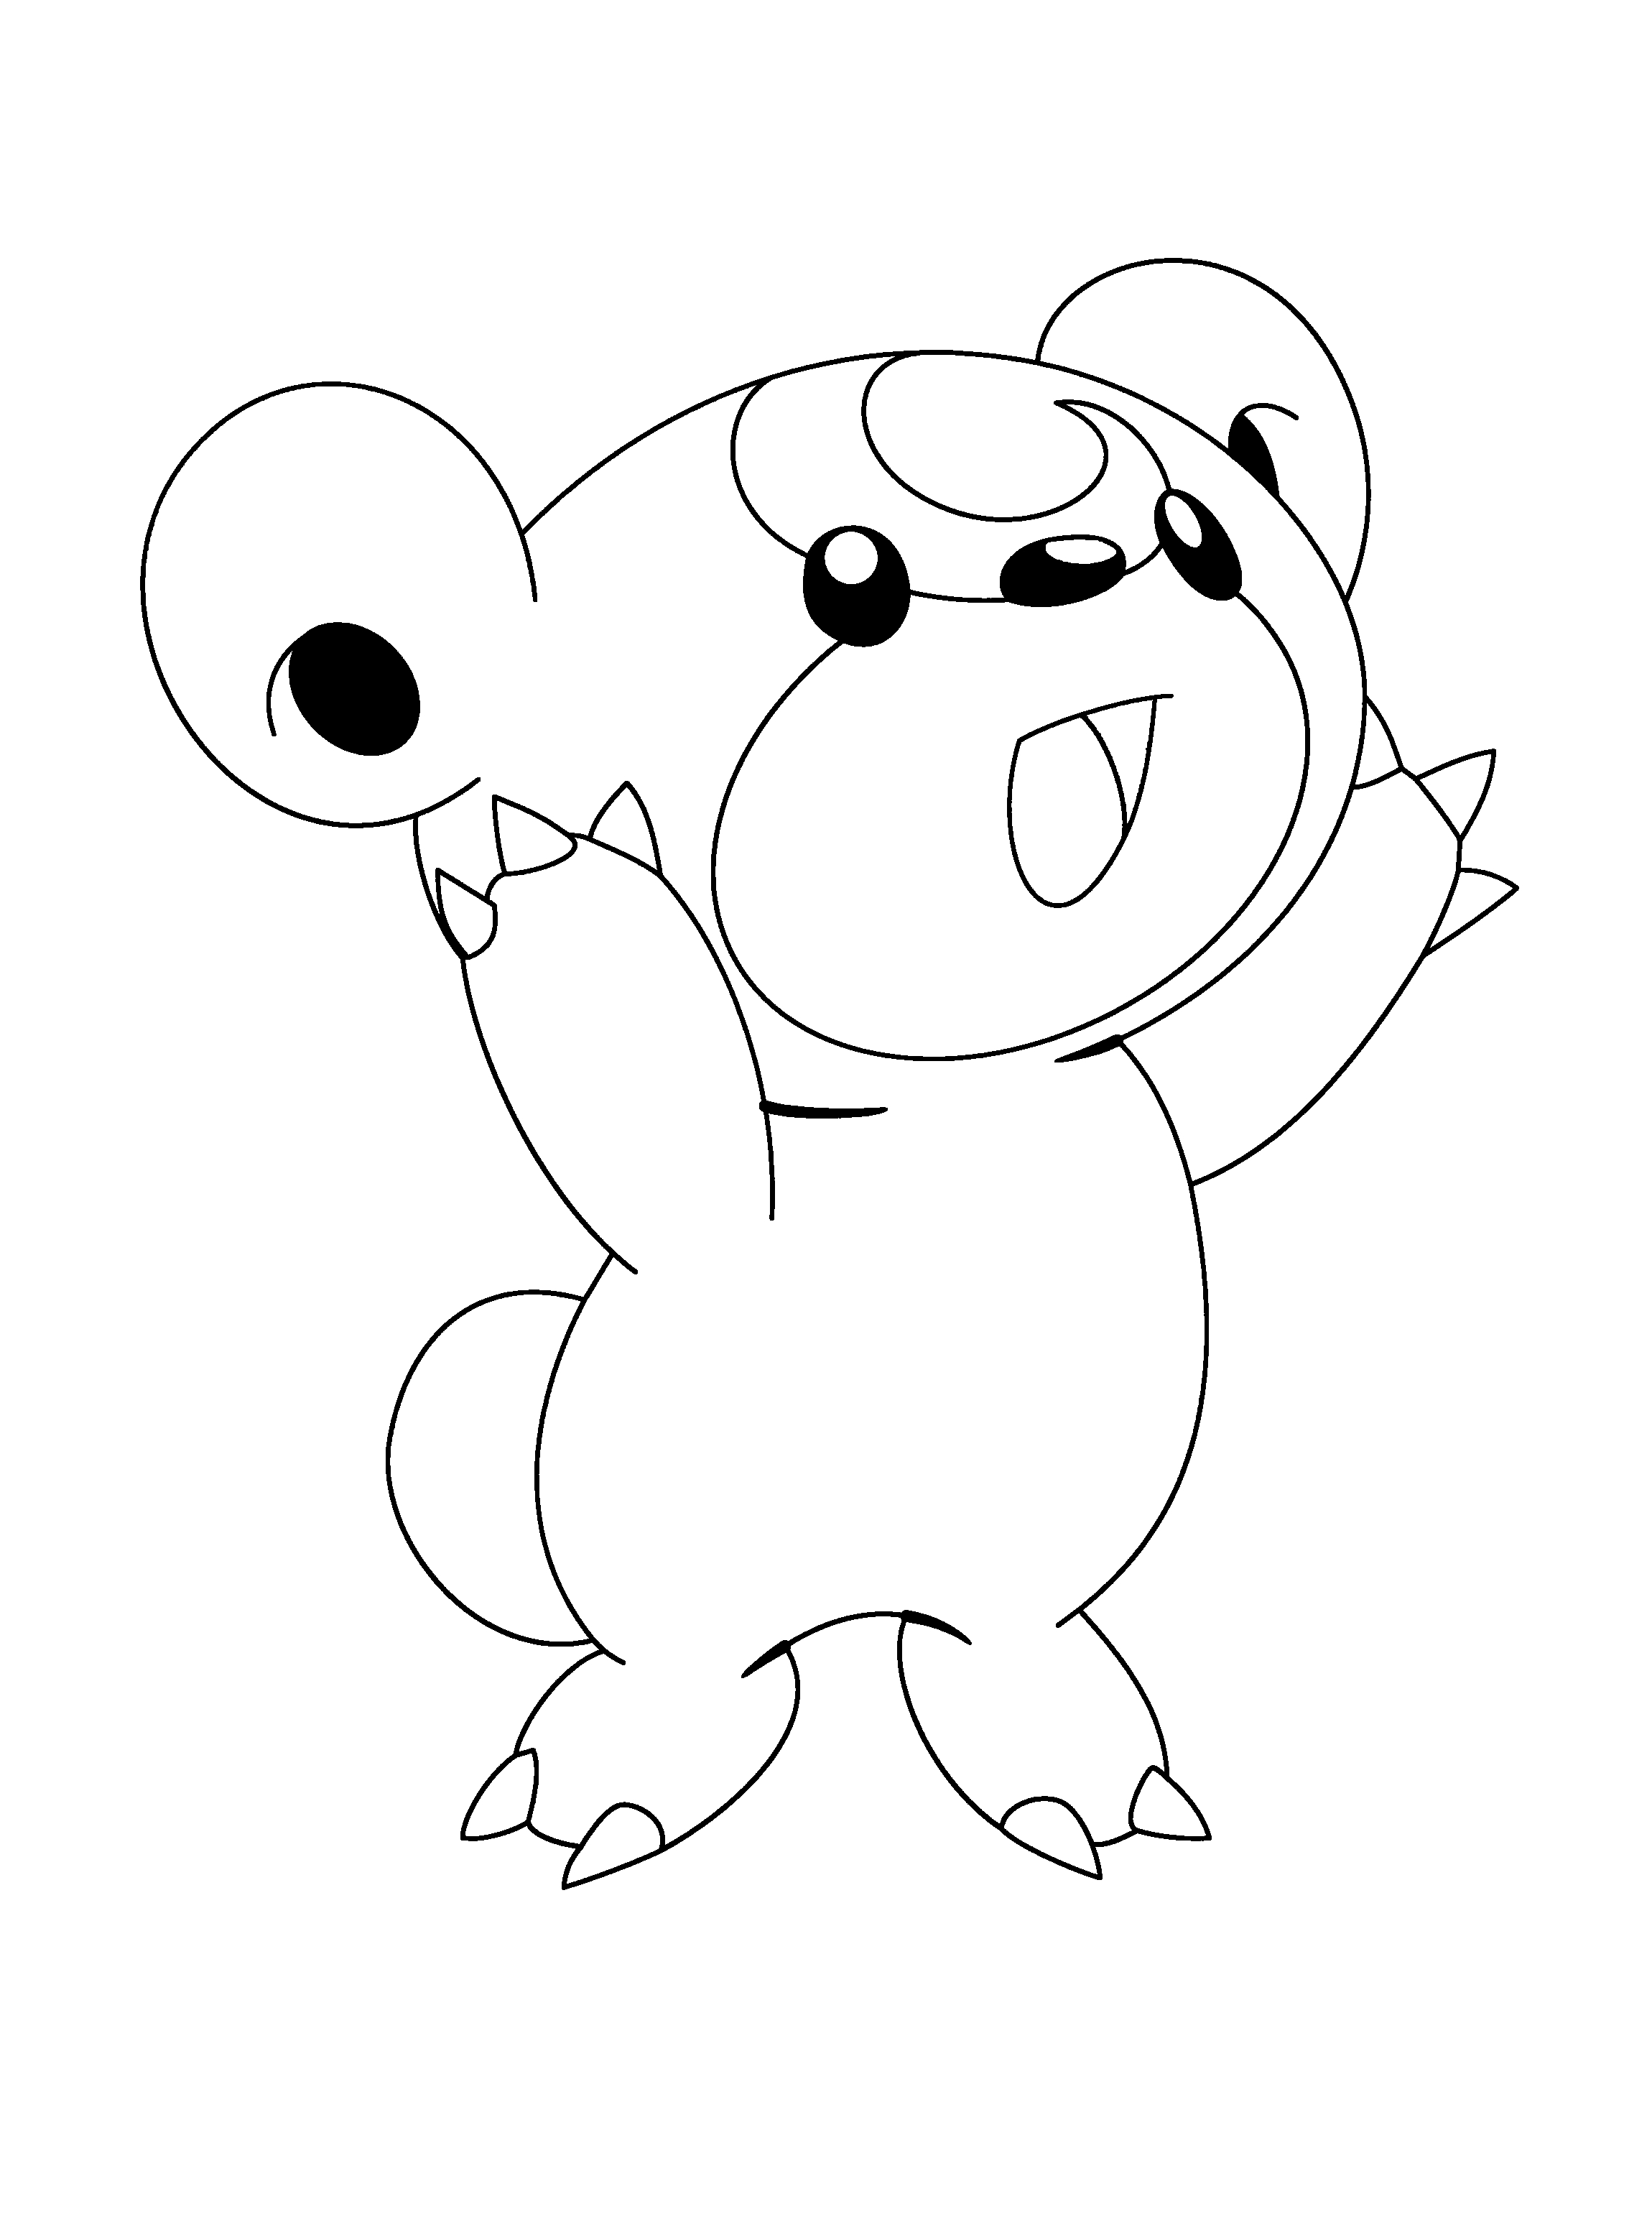 2300x3100 Best Of Cute Pokemon Coloring Pages Design Printable Coloring Sheet